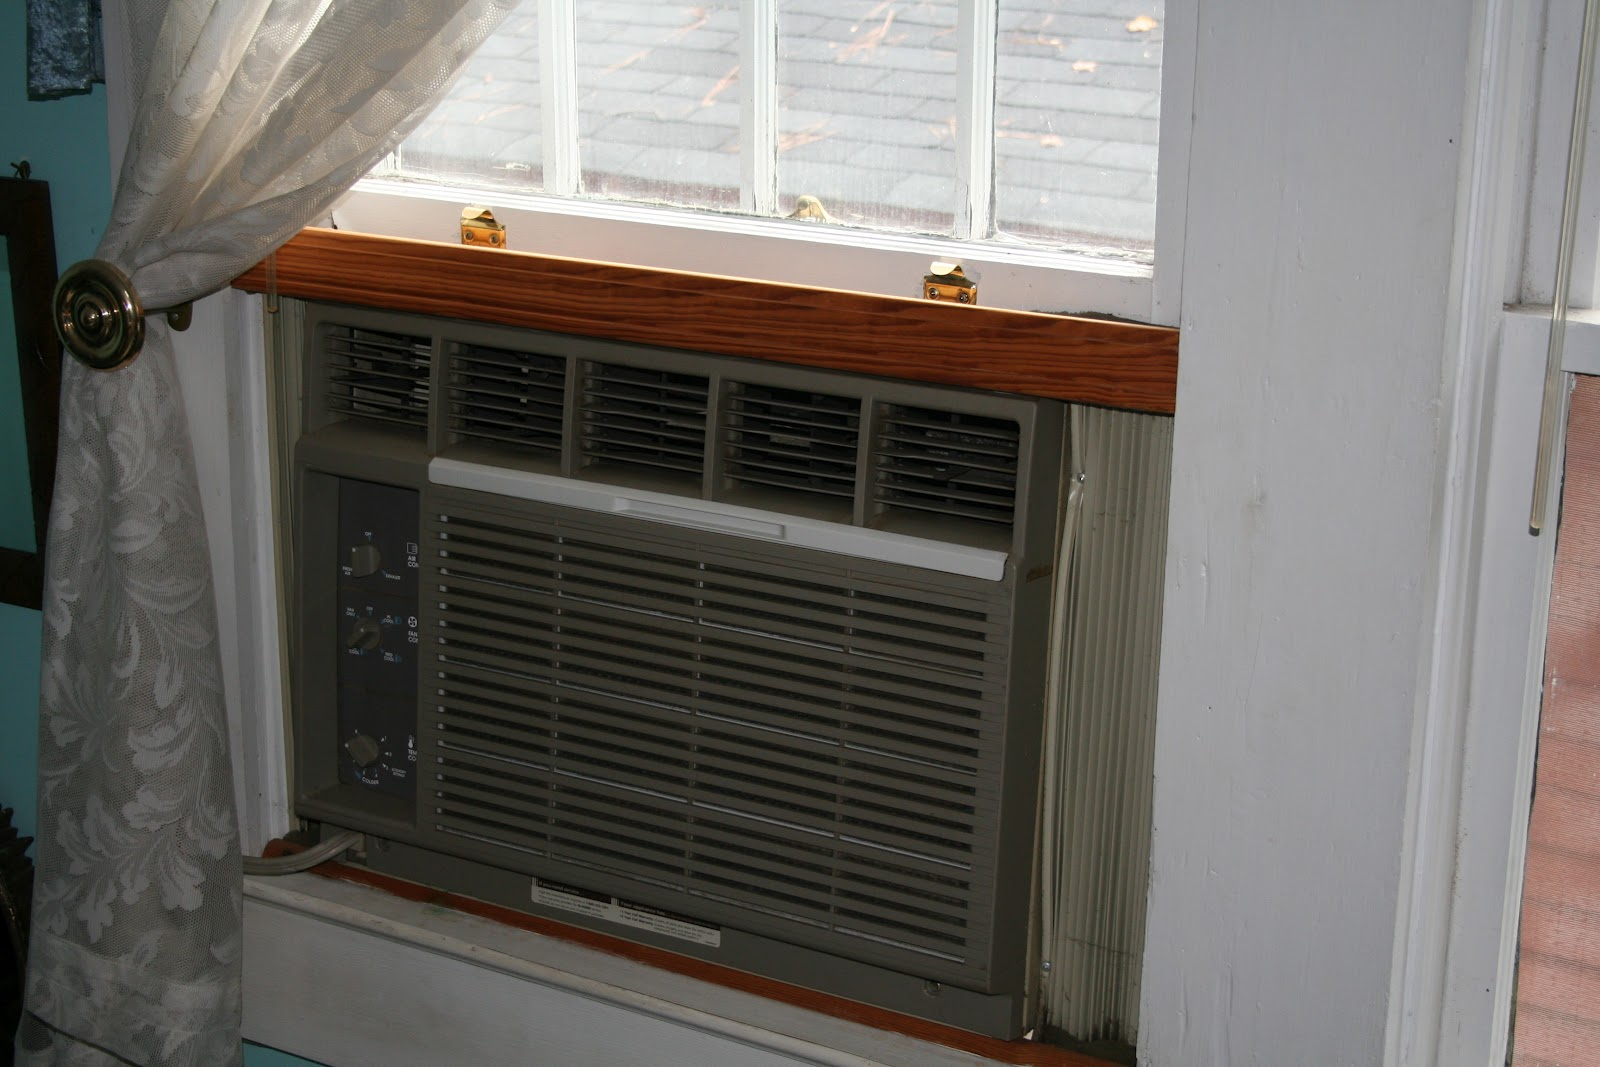 when i bought my house in the air system consisted of an ancient grilleless btu 110v window unit which was fed by a 20u0027 long